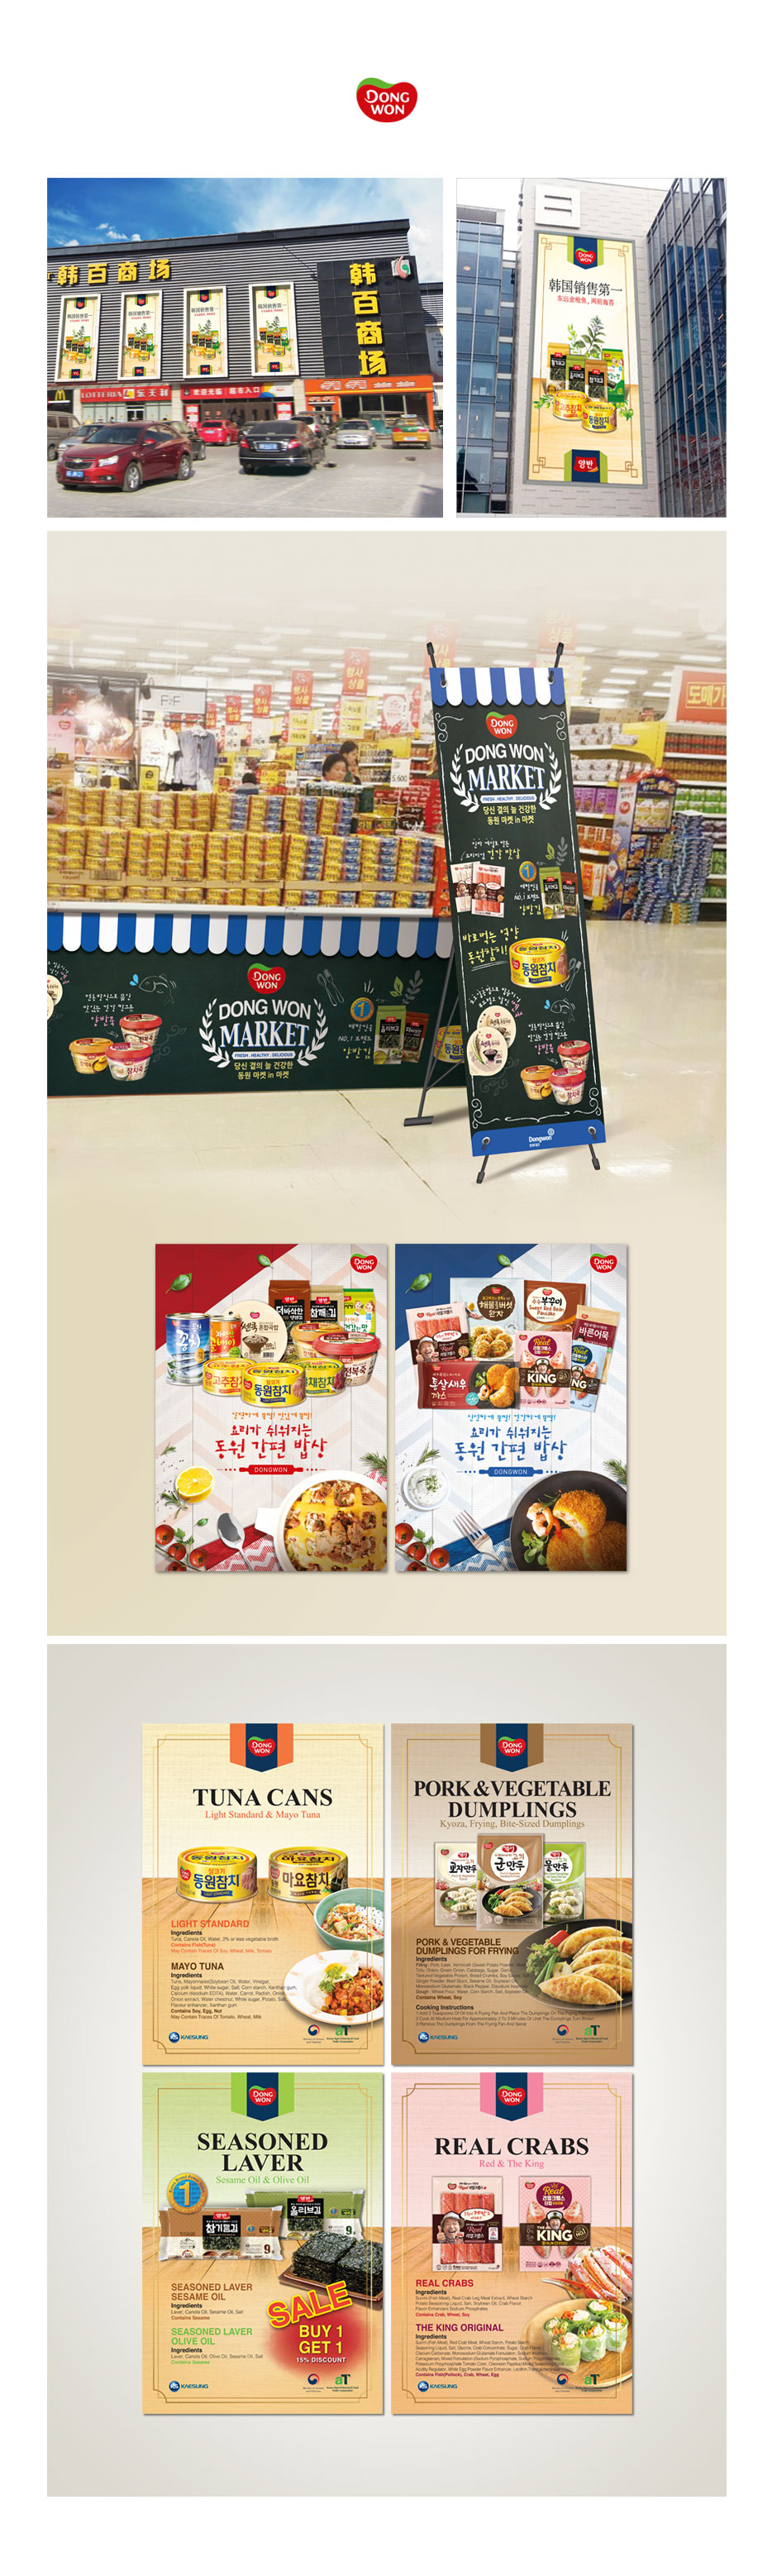 2018_Dongwon-group-company-abroad-outdoor-advertising-and-x-banner-design